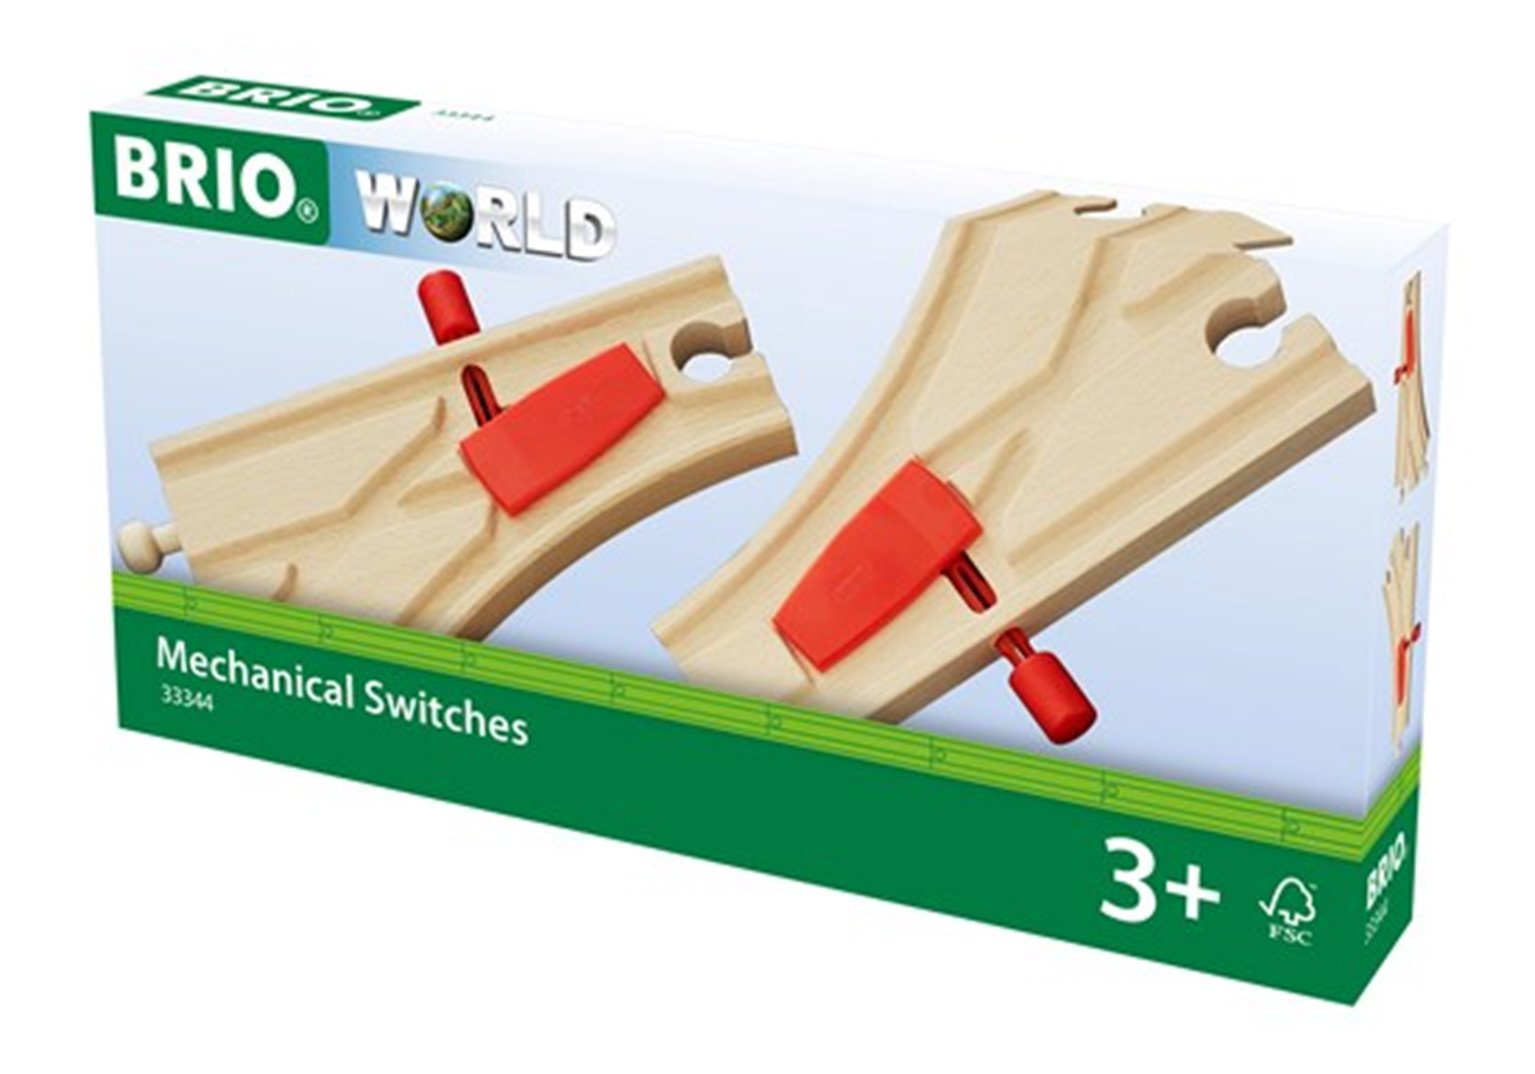 BRIO WORLD - Mechanical Switches for railway